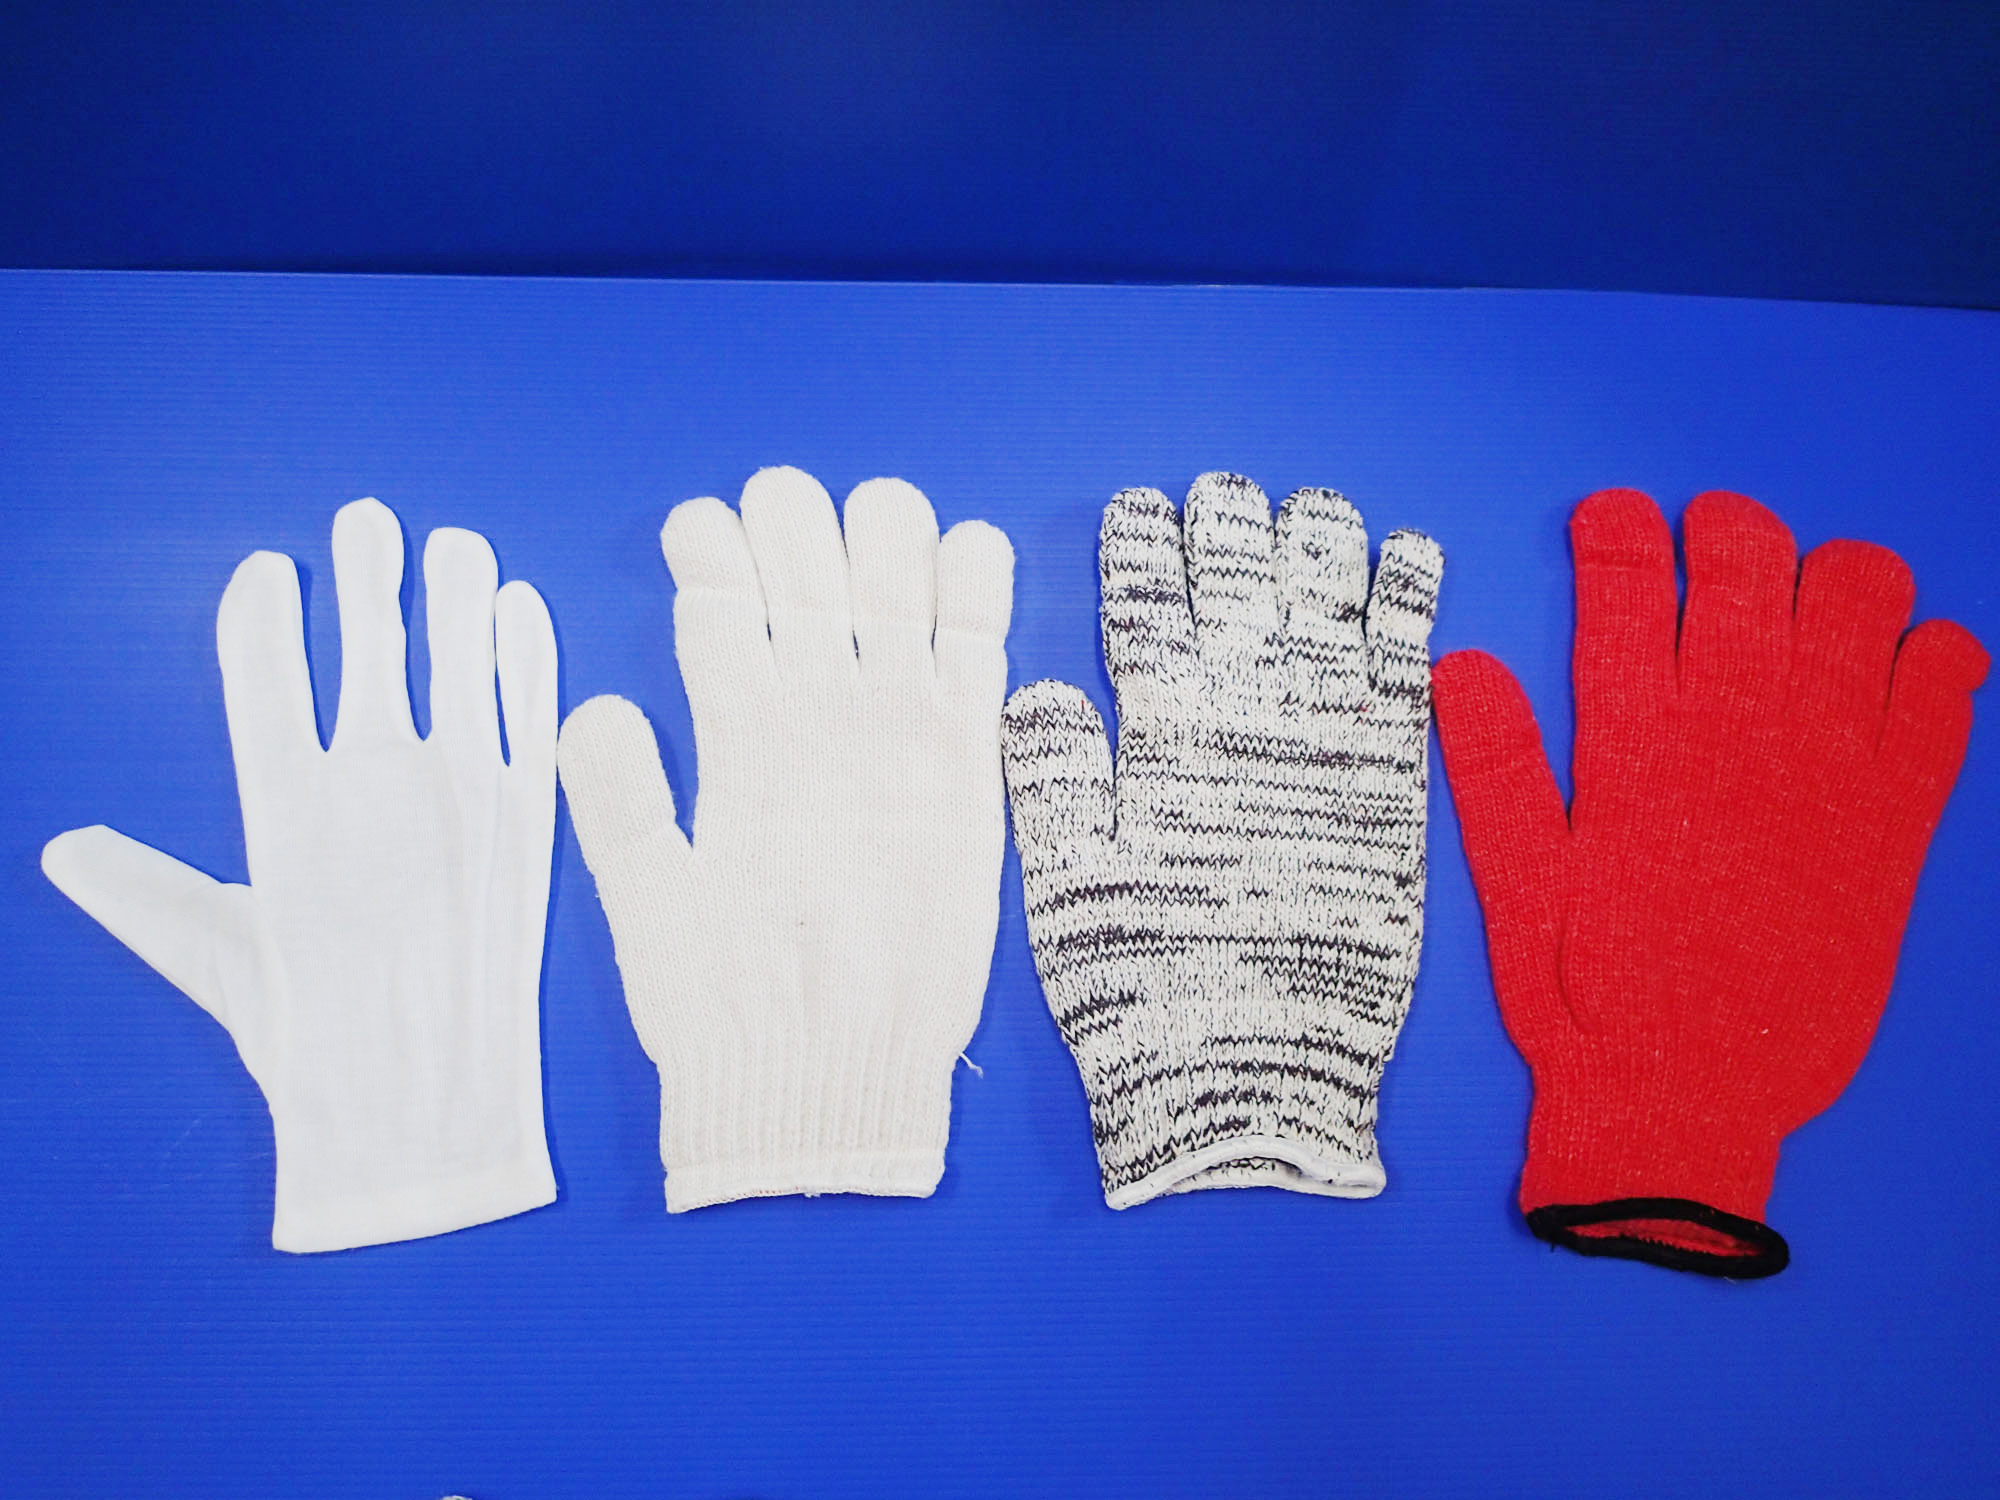 53607f5ced84385075000381_D3-Cotton-Gloves-1.jpg